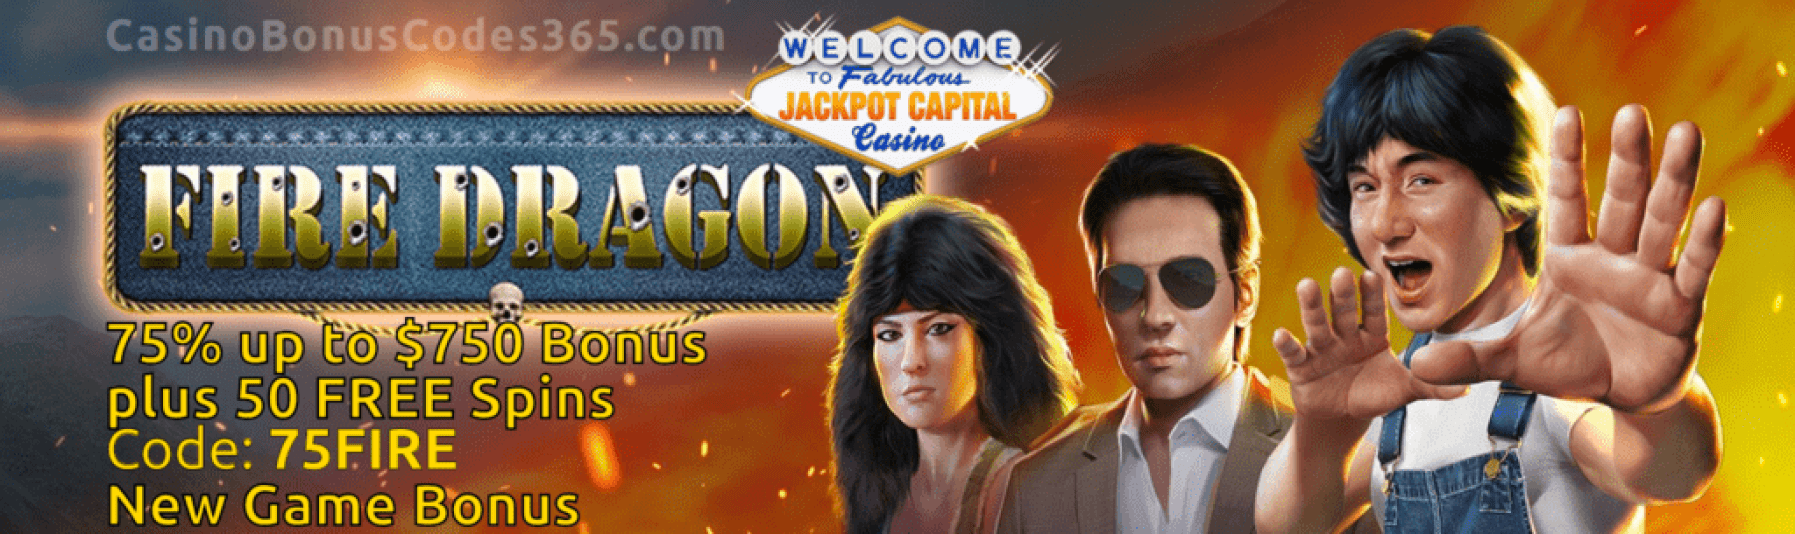 Jackpot Capital Fire Dragon 75% Bonus and 50 FREE Spins New RTG Game Promo